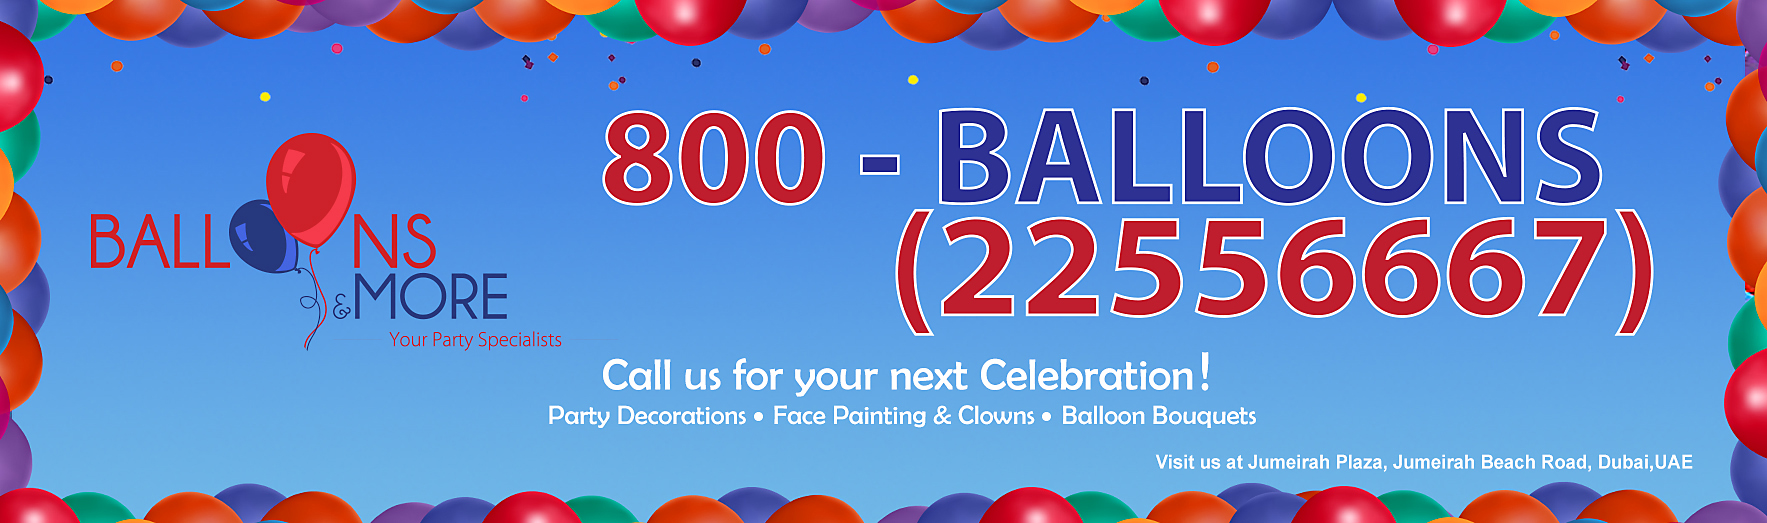 Toll Free 800-BALLOONS